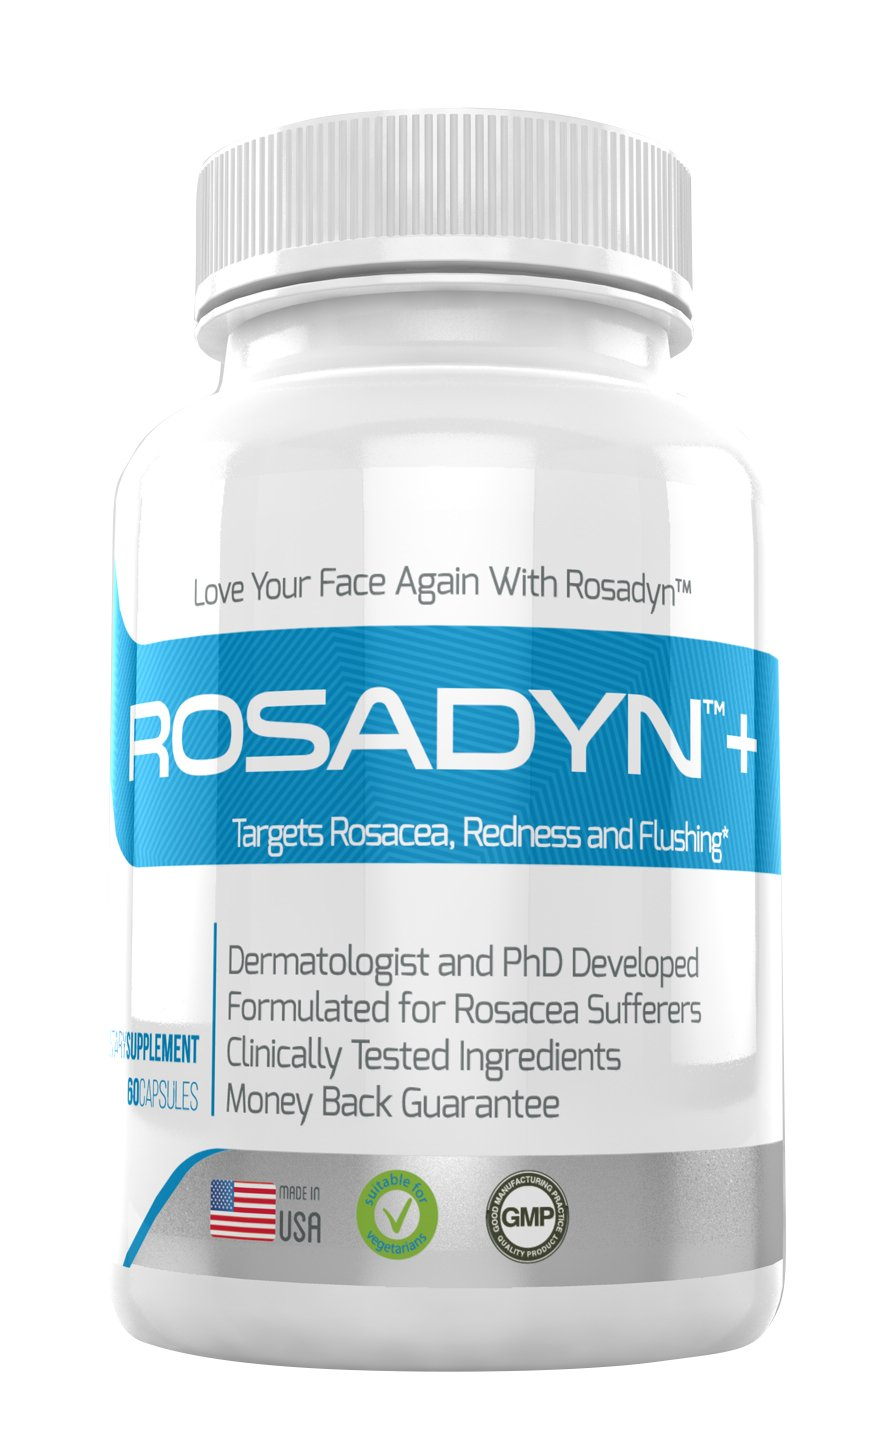 Rosacea Treatment Supplement by Rosadyn | Relief for Face & Nose Redness, Acne and Red Eyes | Works Internally Unlike a Cleanser Wash, Moisturizer, Cream or Other Skin Care Products| Natural by Rosadyn+